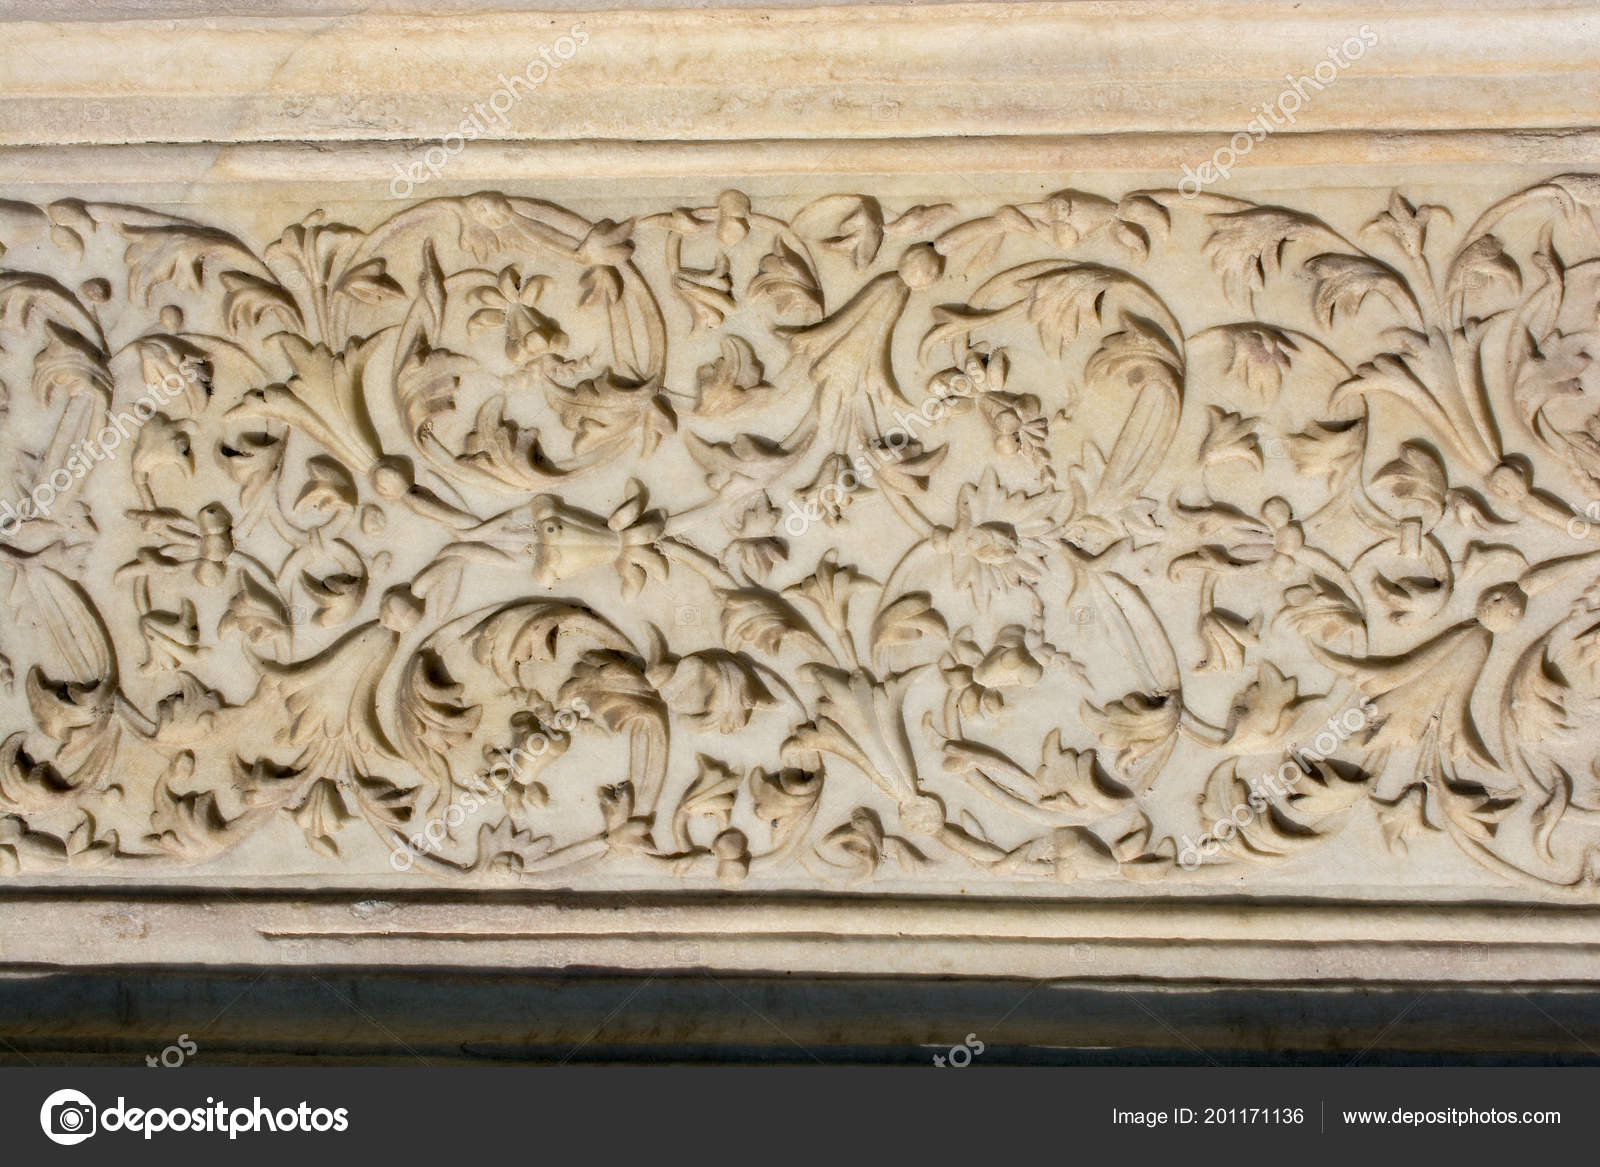 Ottoman Marble Stone Carving Art Floral Patterns — Stock